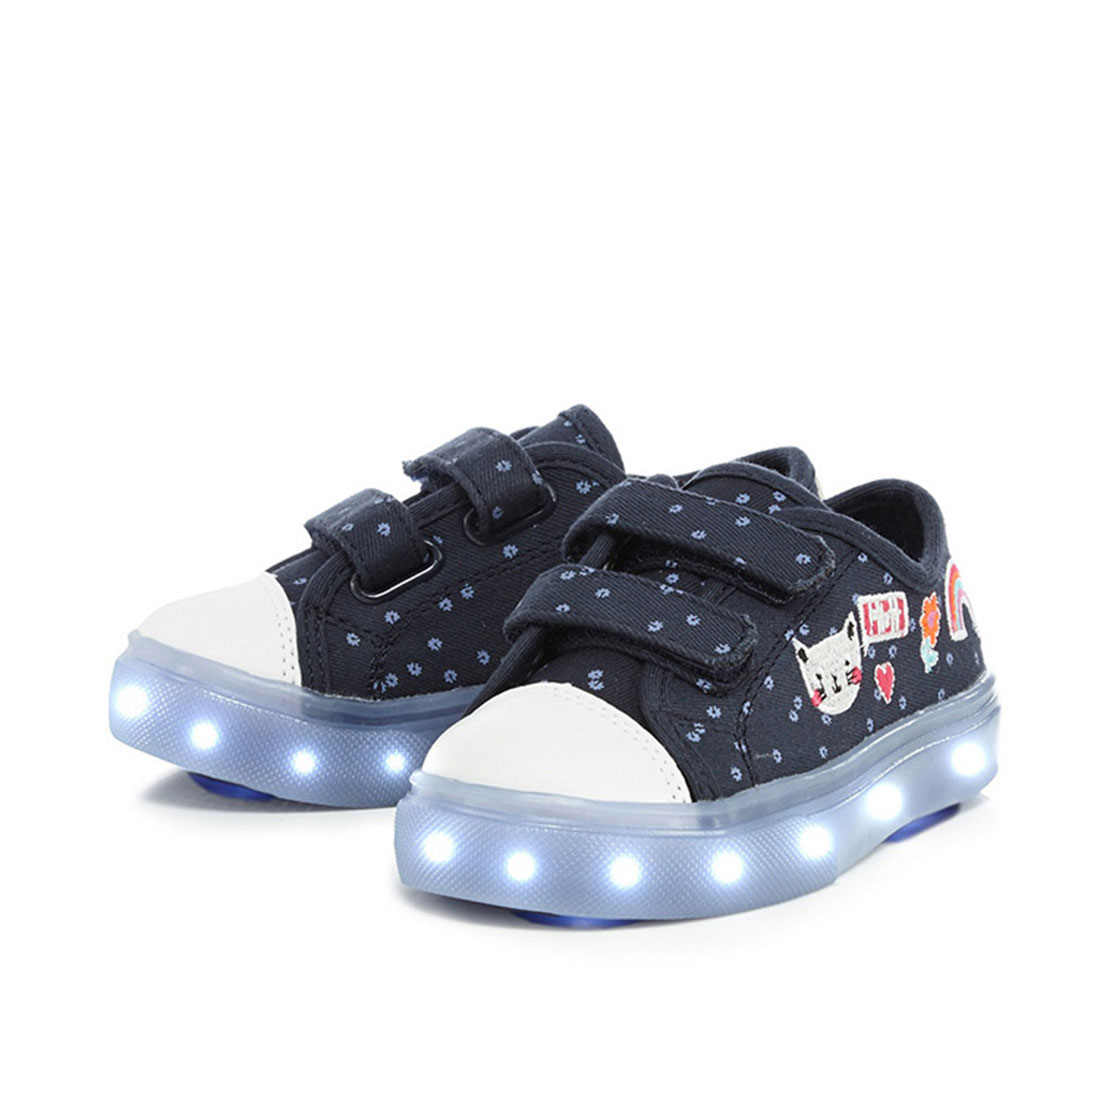 Fabric upper dark blue flat fashion design light shoes kid